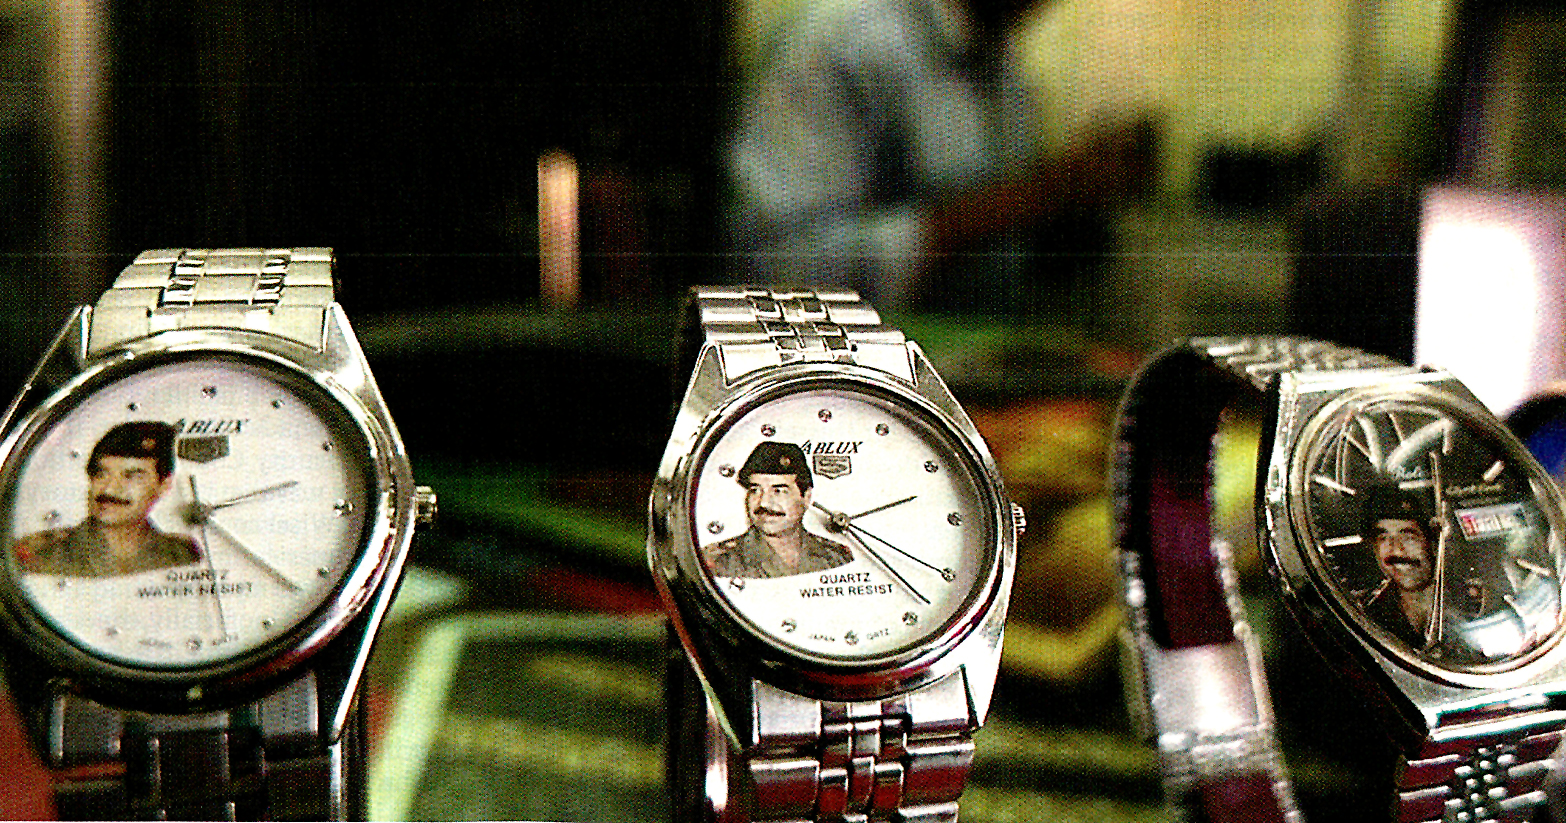 March 17, 2003 – Deadline On Iraq – President Bush And The Ticking Clock.